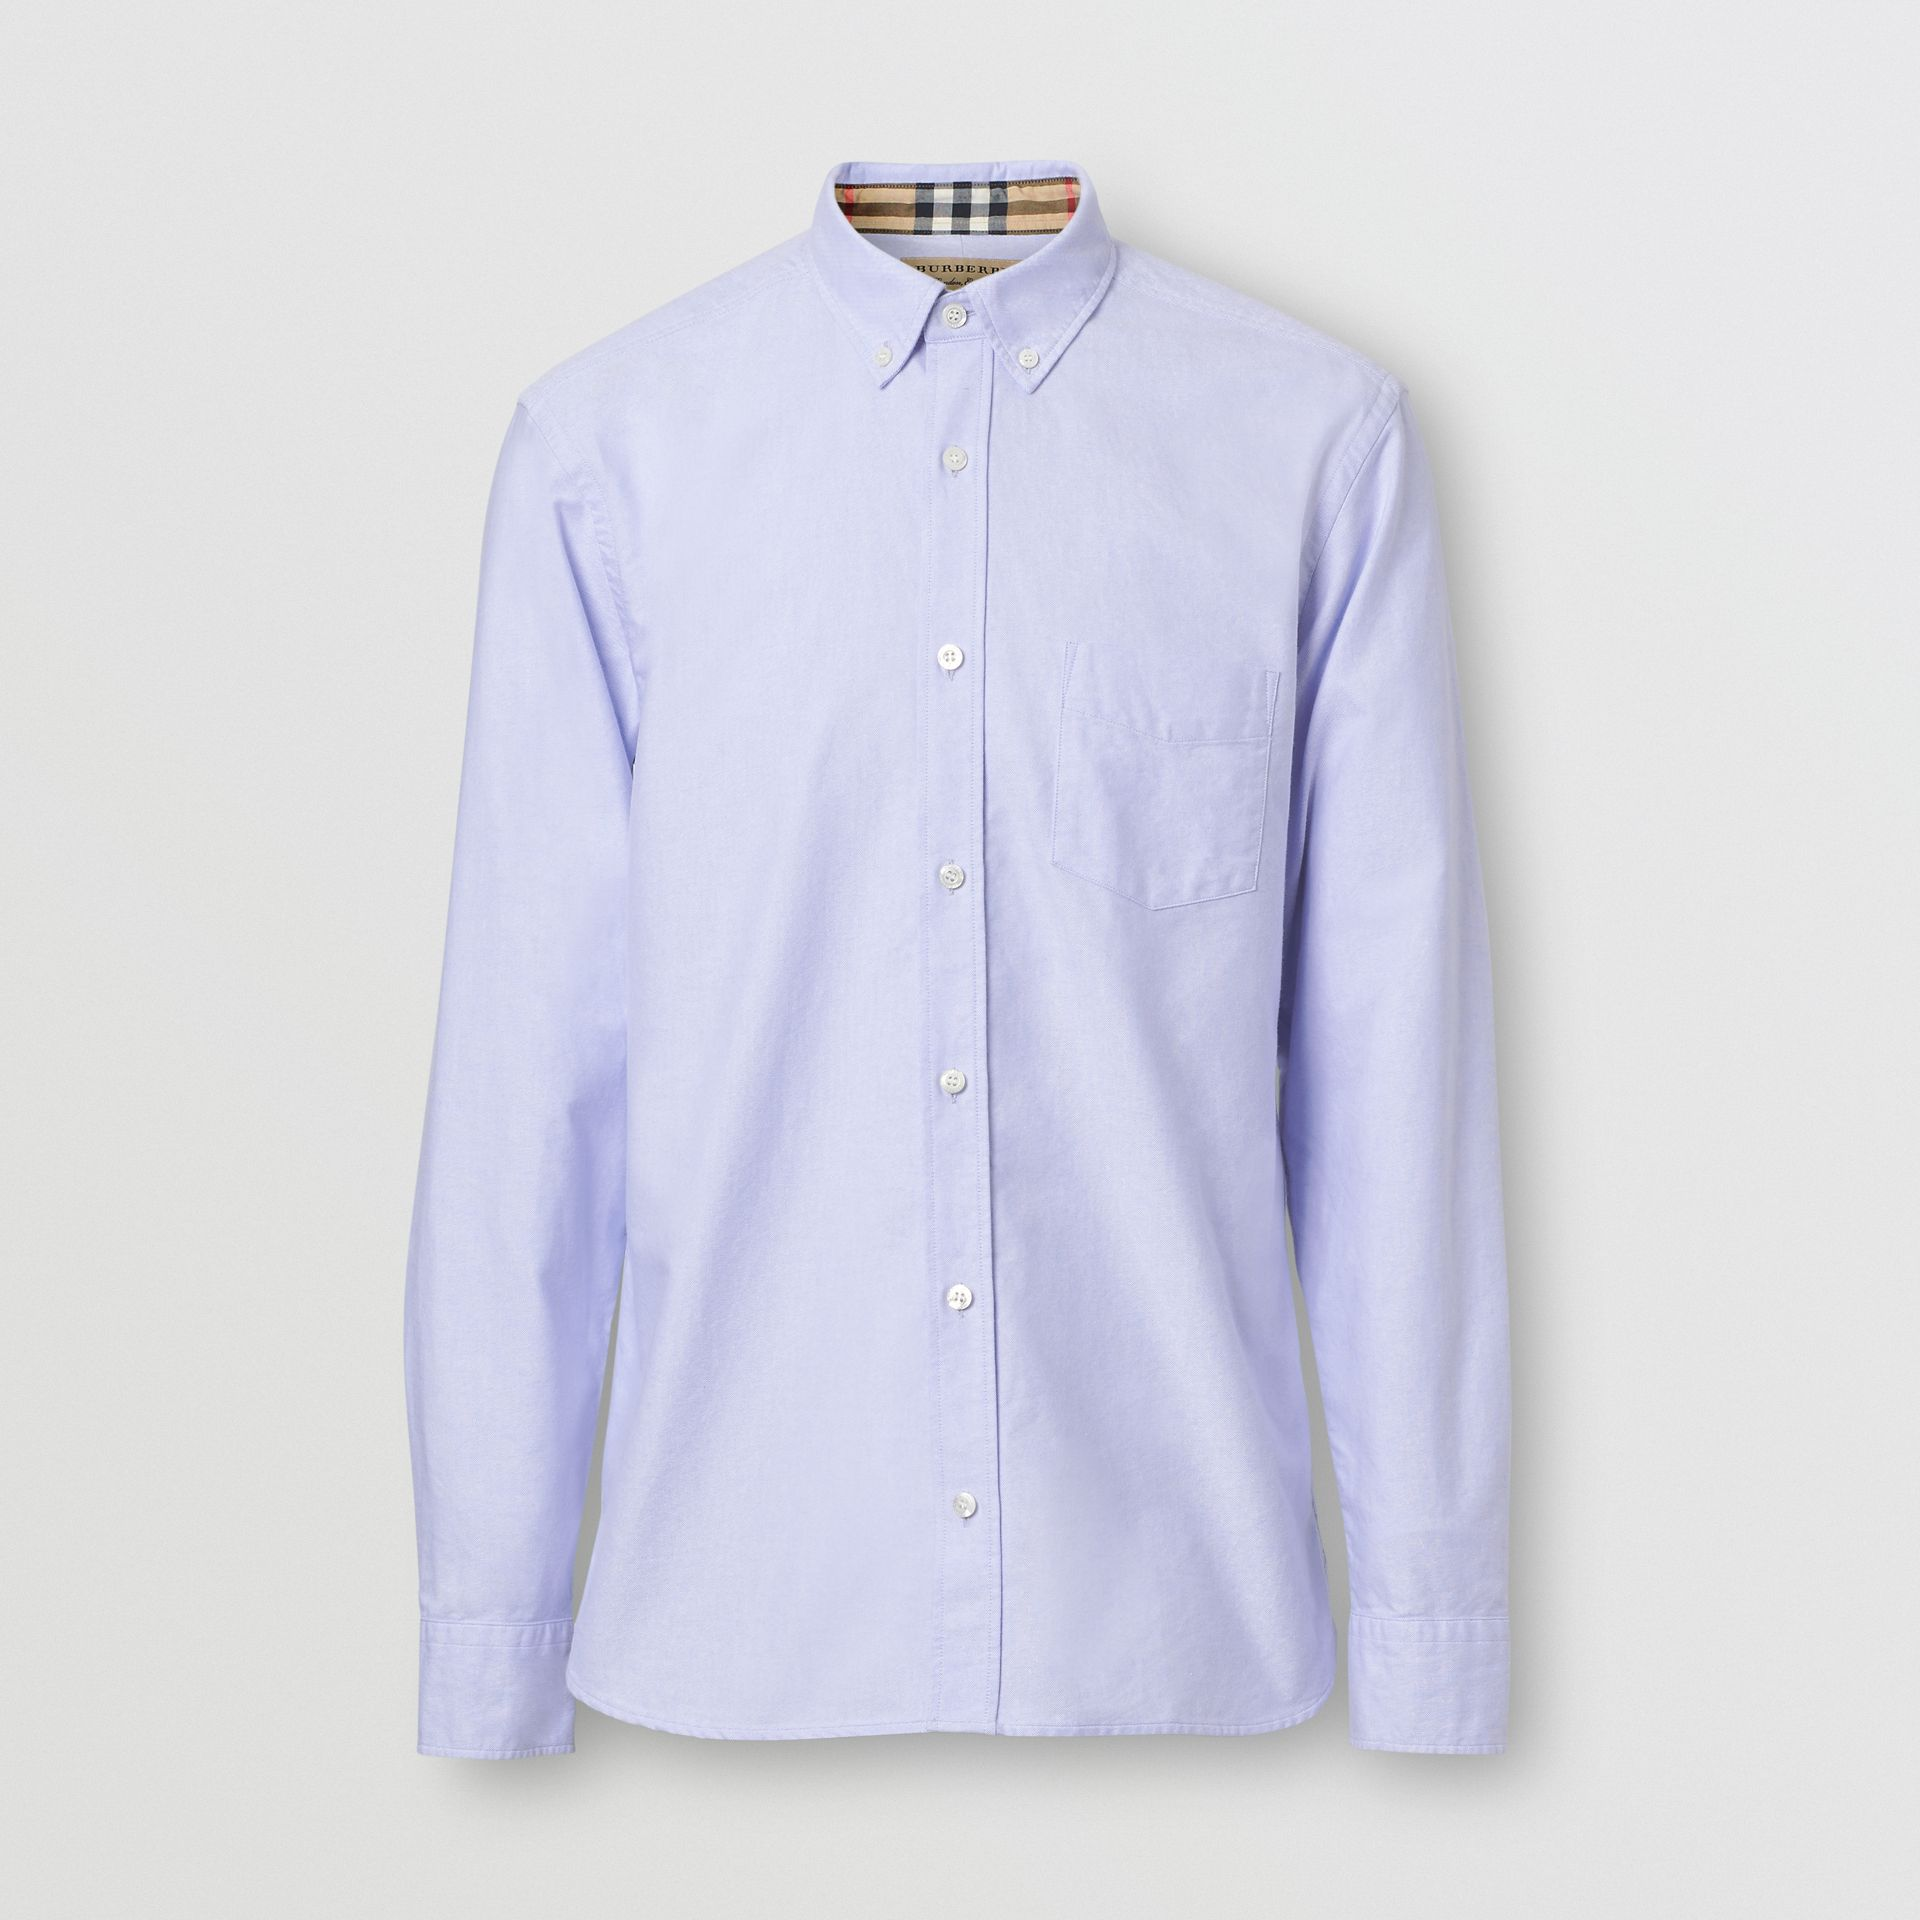 Button-down Collar Cotton Oxford Shirt in Cornflower Blue - Men | Burberry United Kingdom - gallery image 3